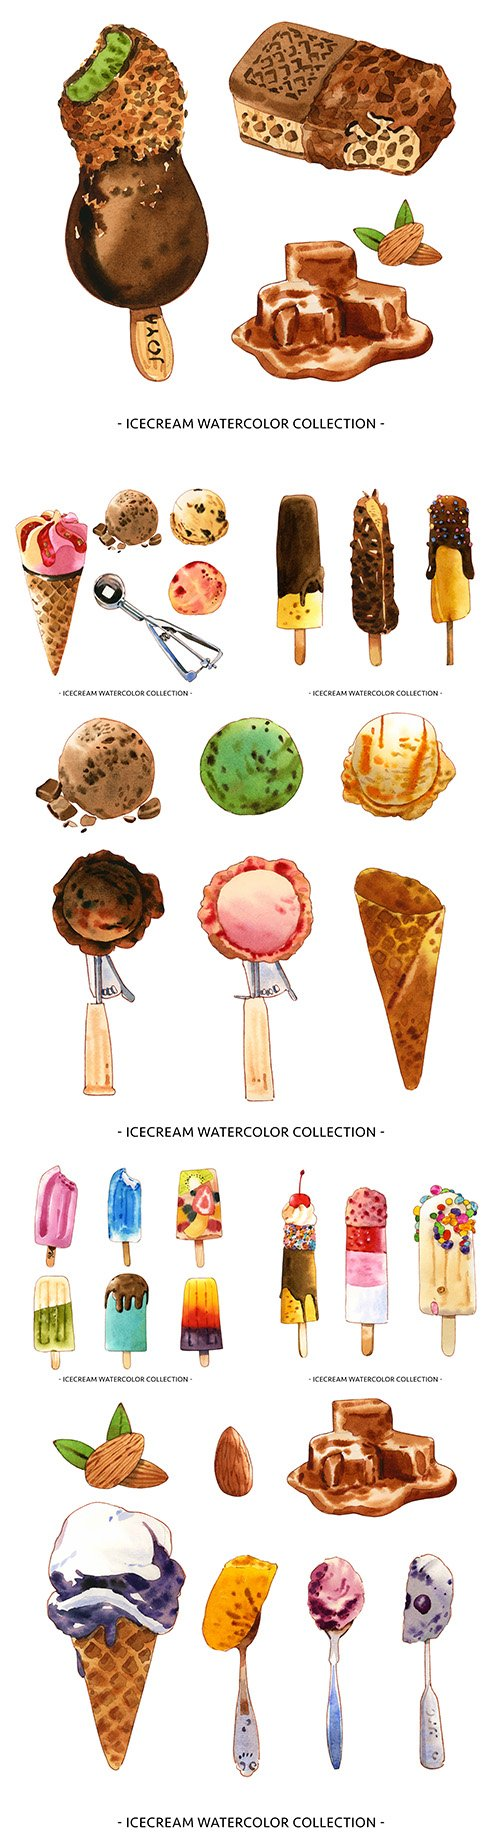 Ice cream with nuts and chocolate watercolor illustrations